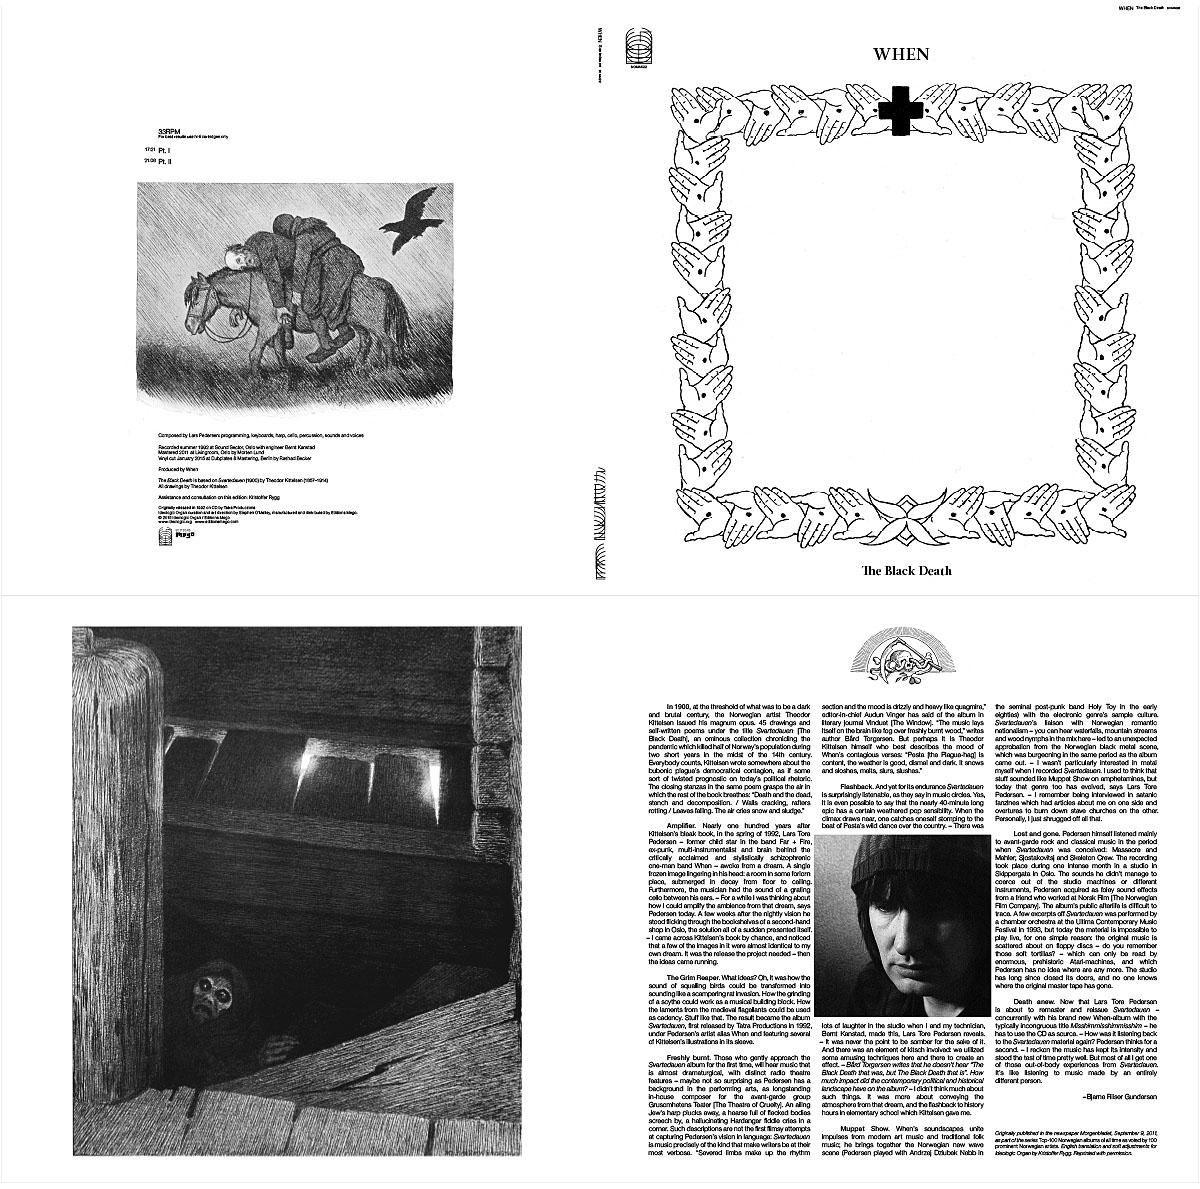 """SOMA022 When """"The Black Death"""" gatefold LP now available for preorder"""